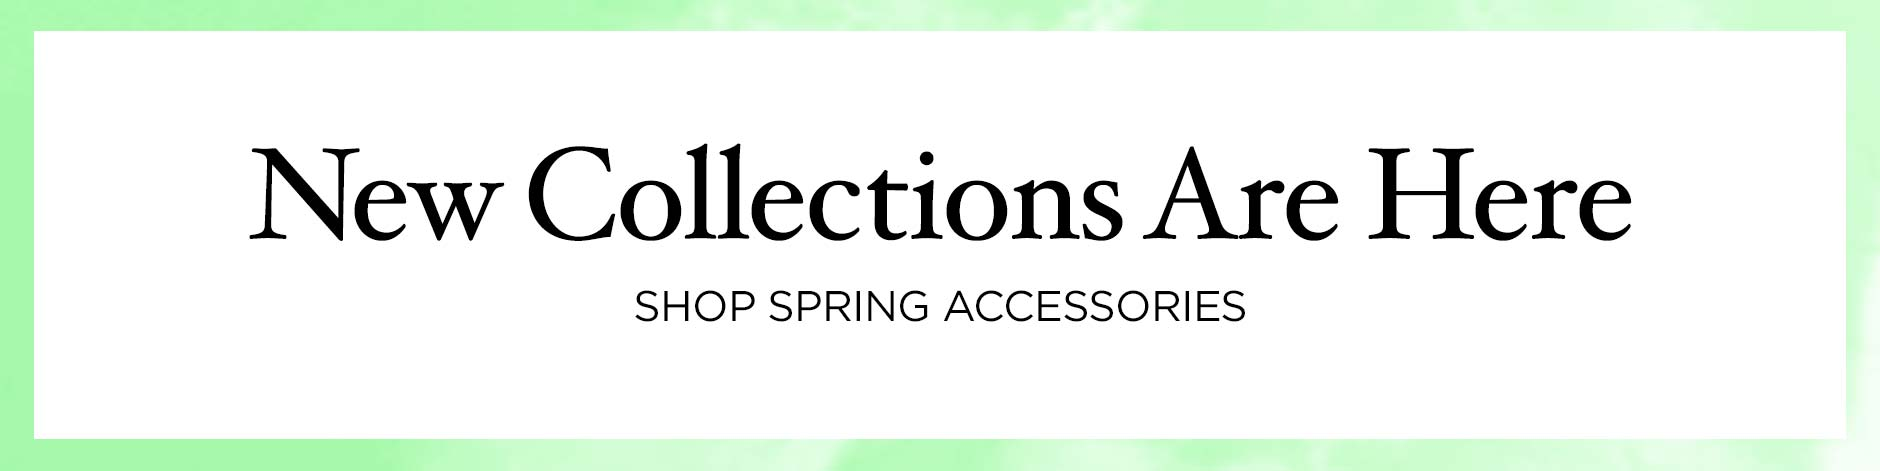 Spring Collections - Accessories